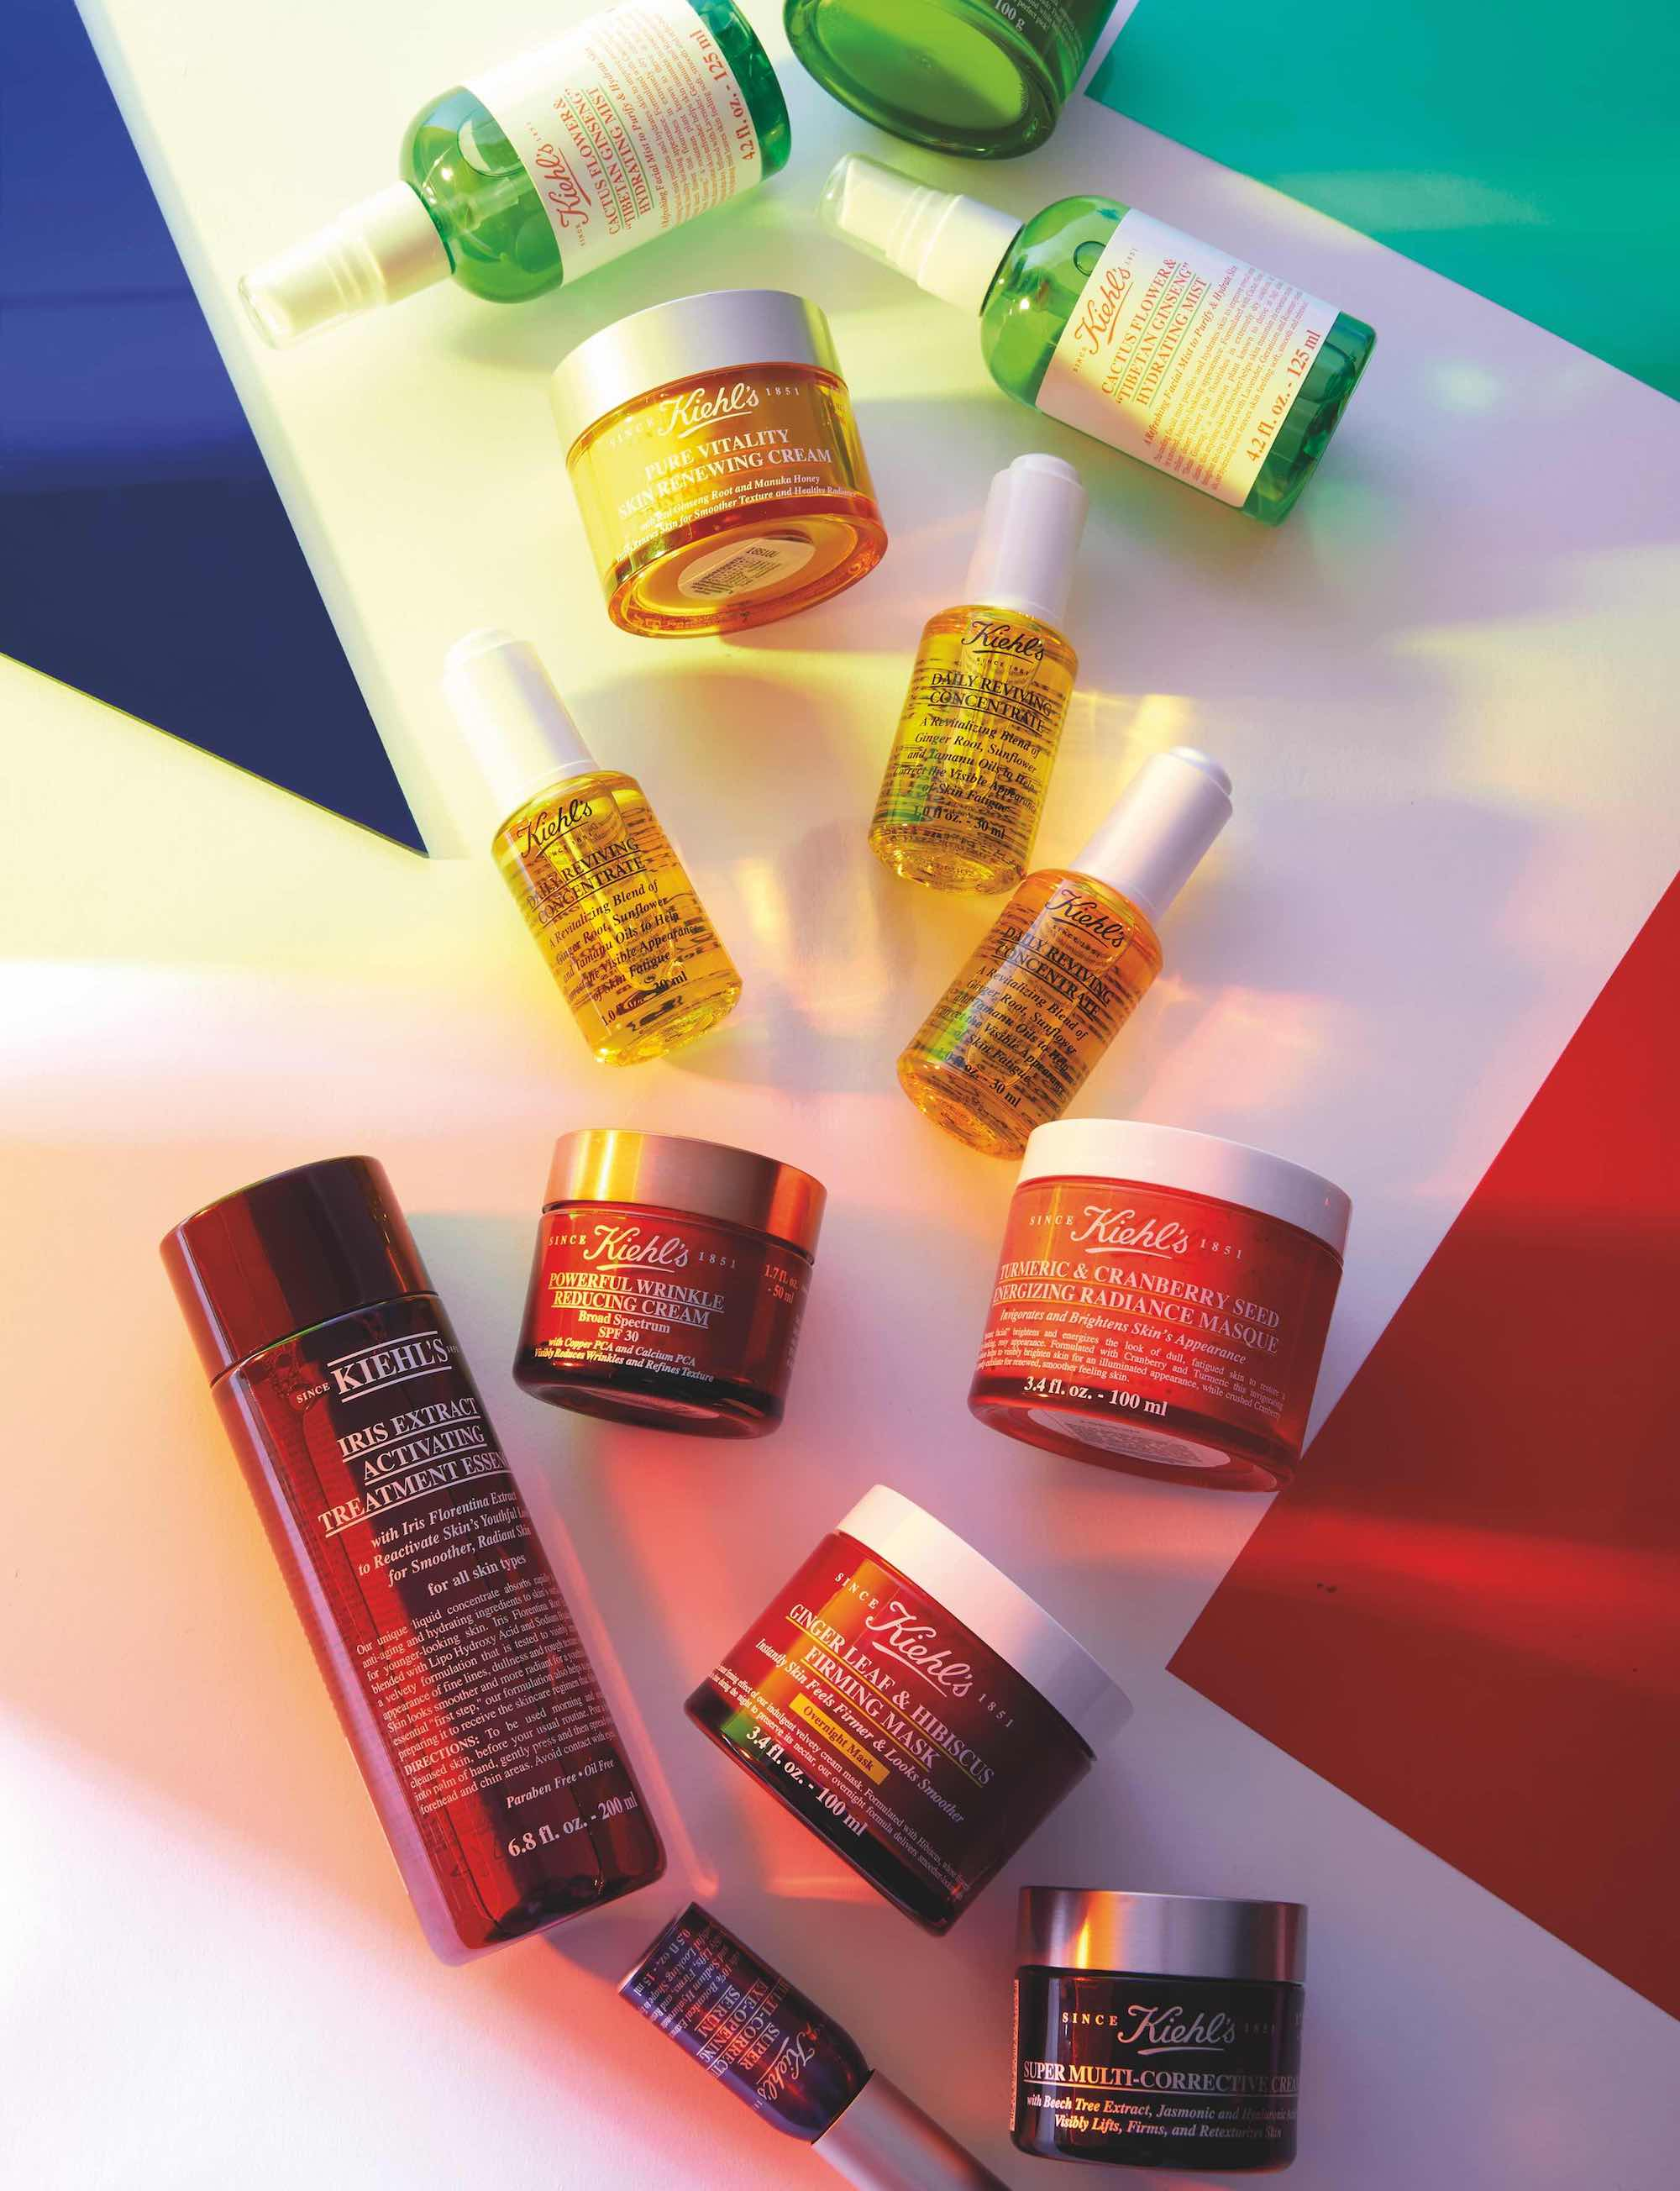 Kiehl's x Pride in Summer 19 issue of Wonderland colourway